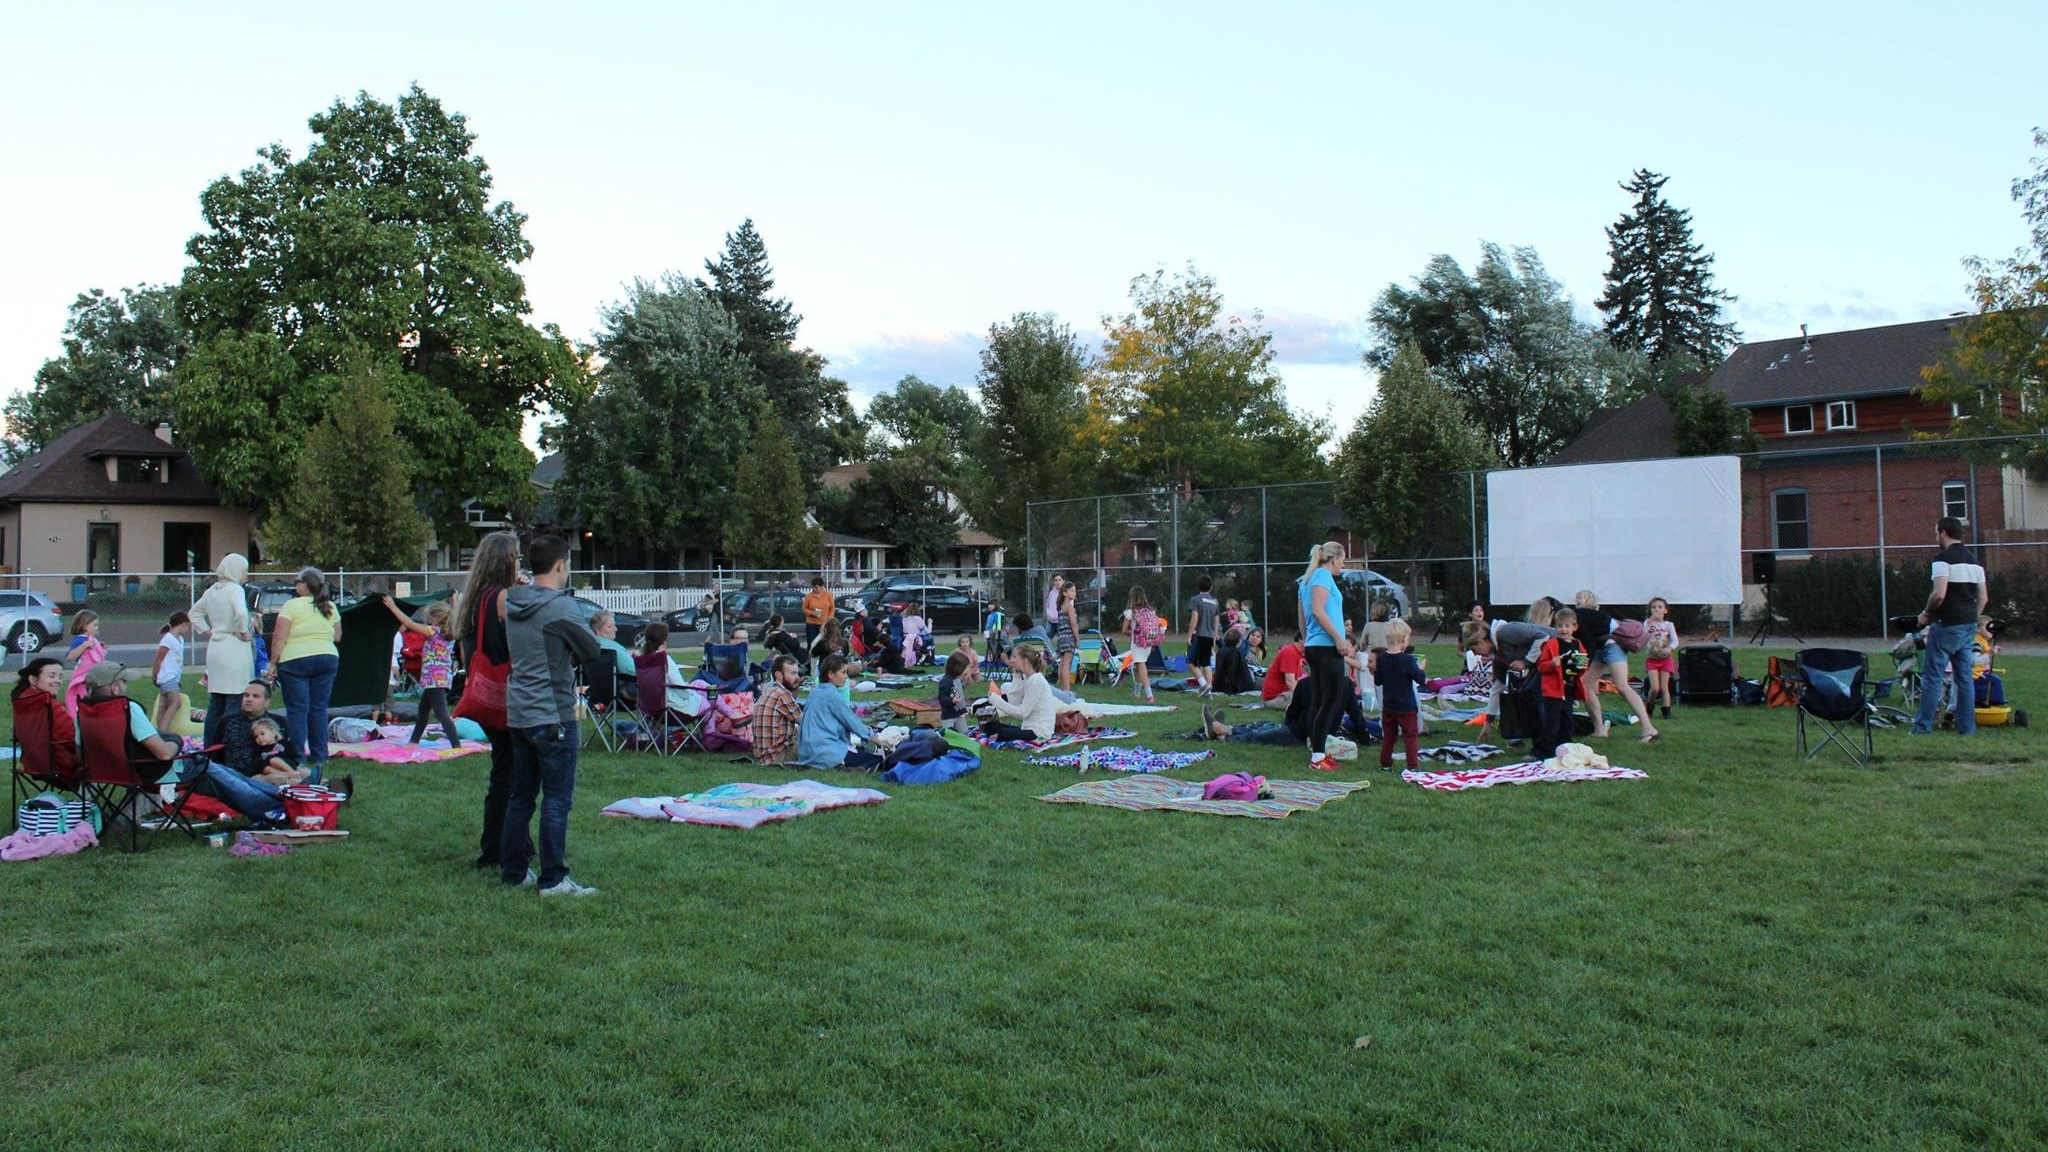 2016 Outdoor Movie Night at Lincoln Elementary